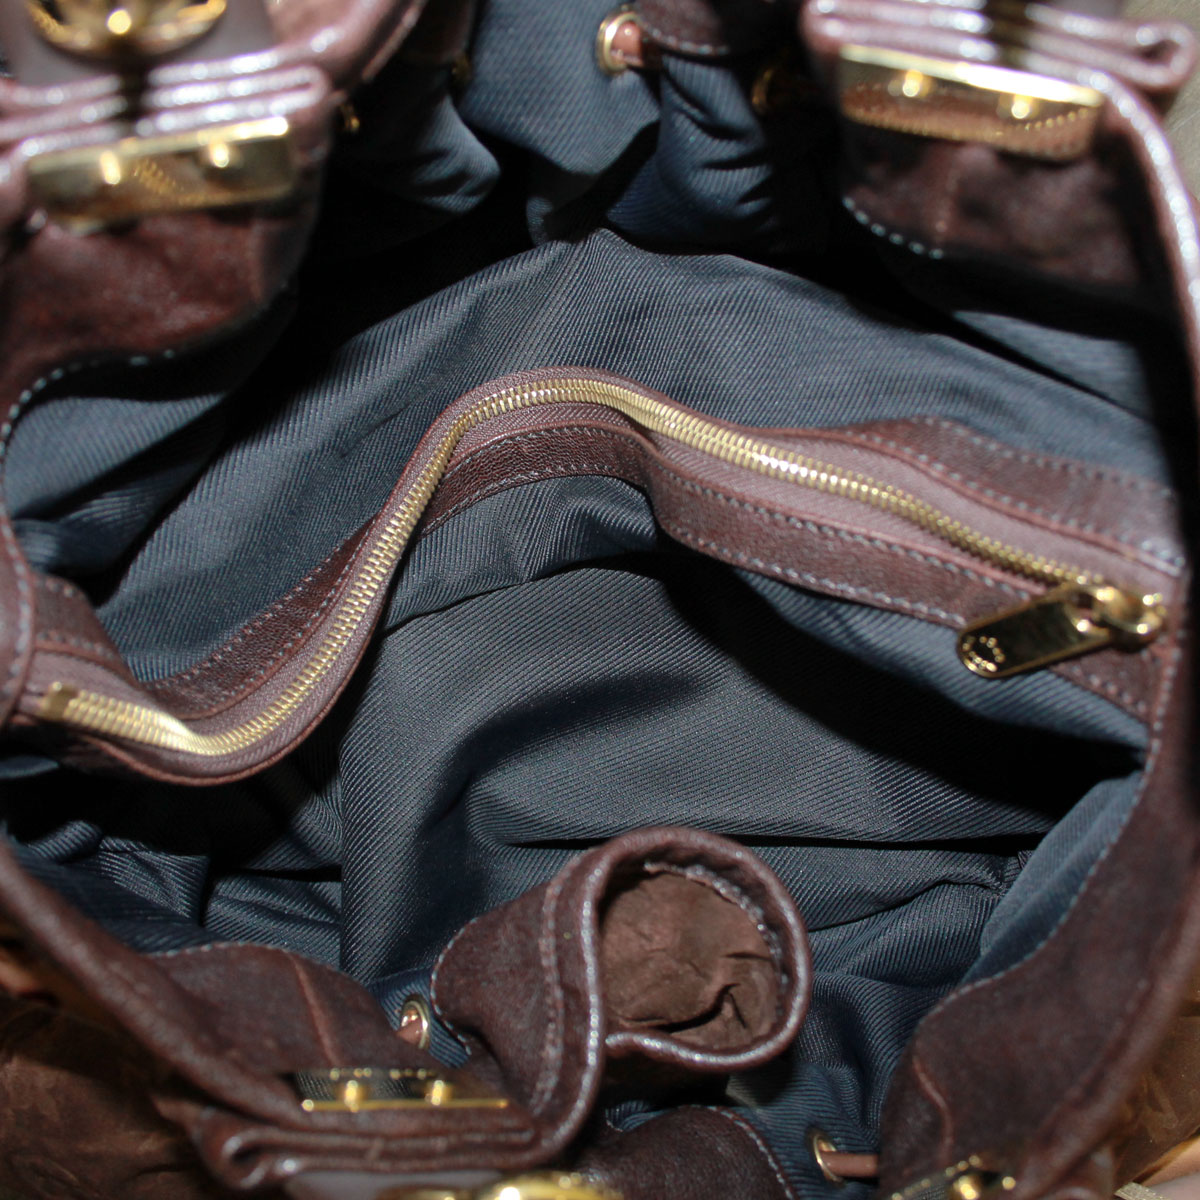 louis vuitton irene espresso suede patent leather limited edition tote. Black Bedroom Furniture Sets. Home Design Ideas